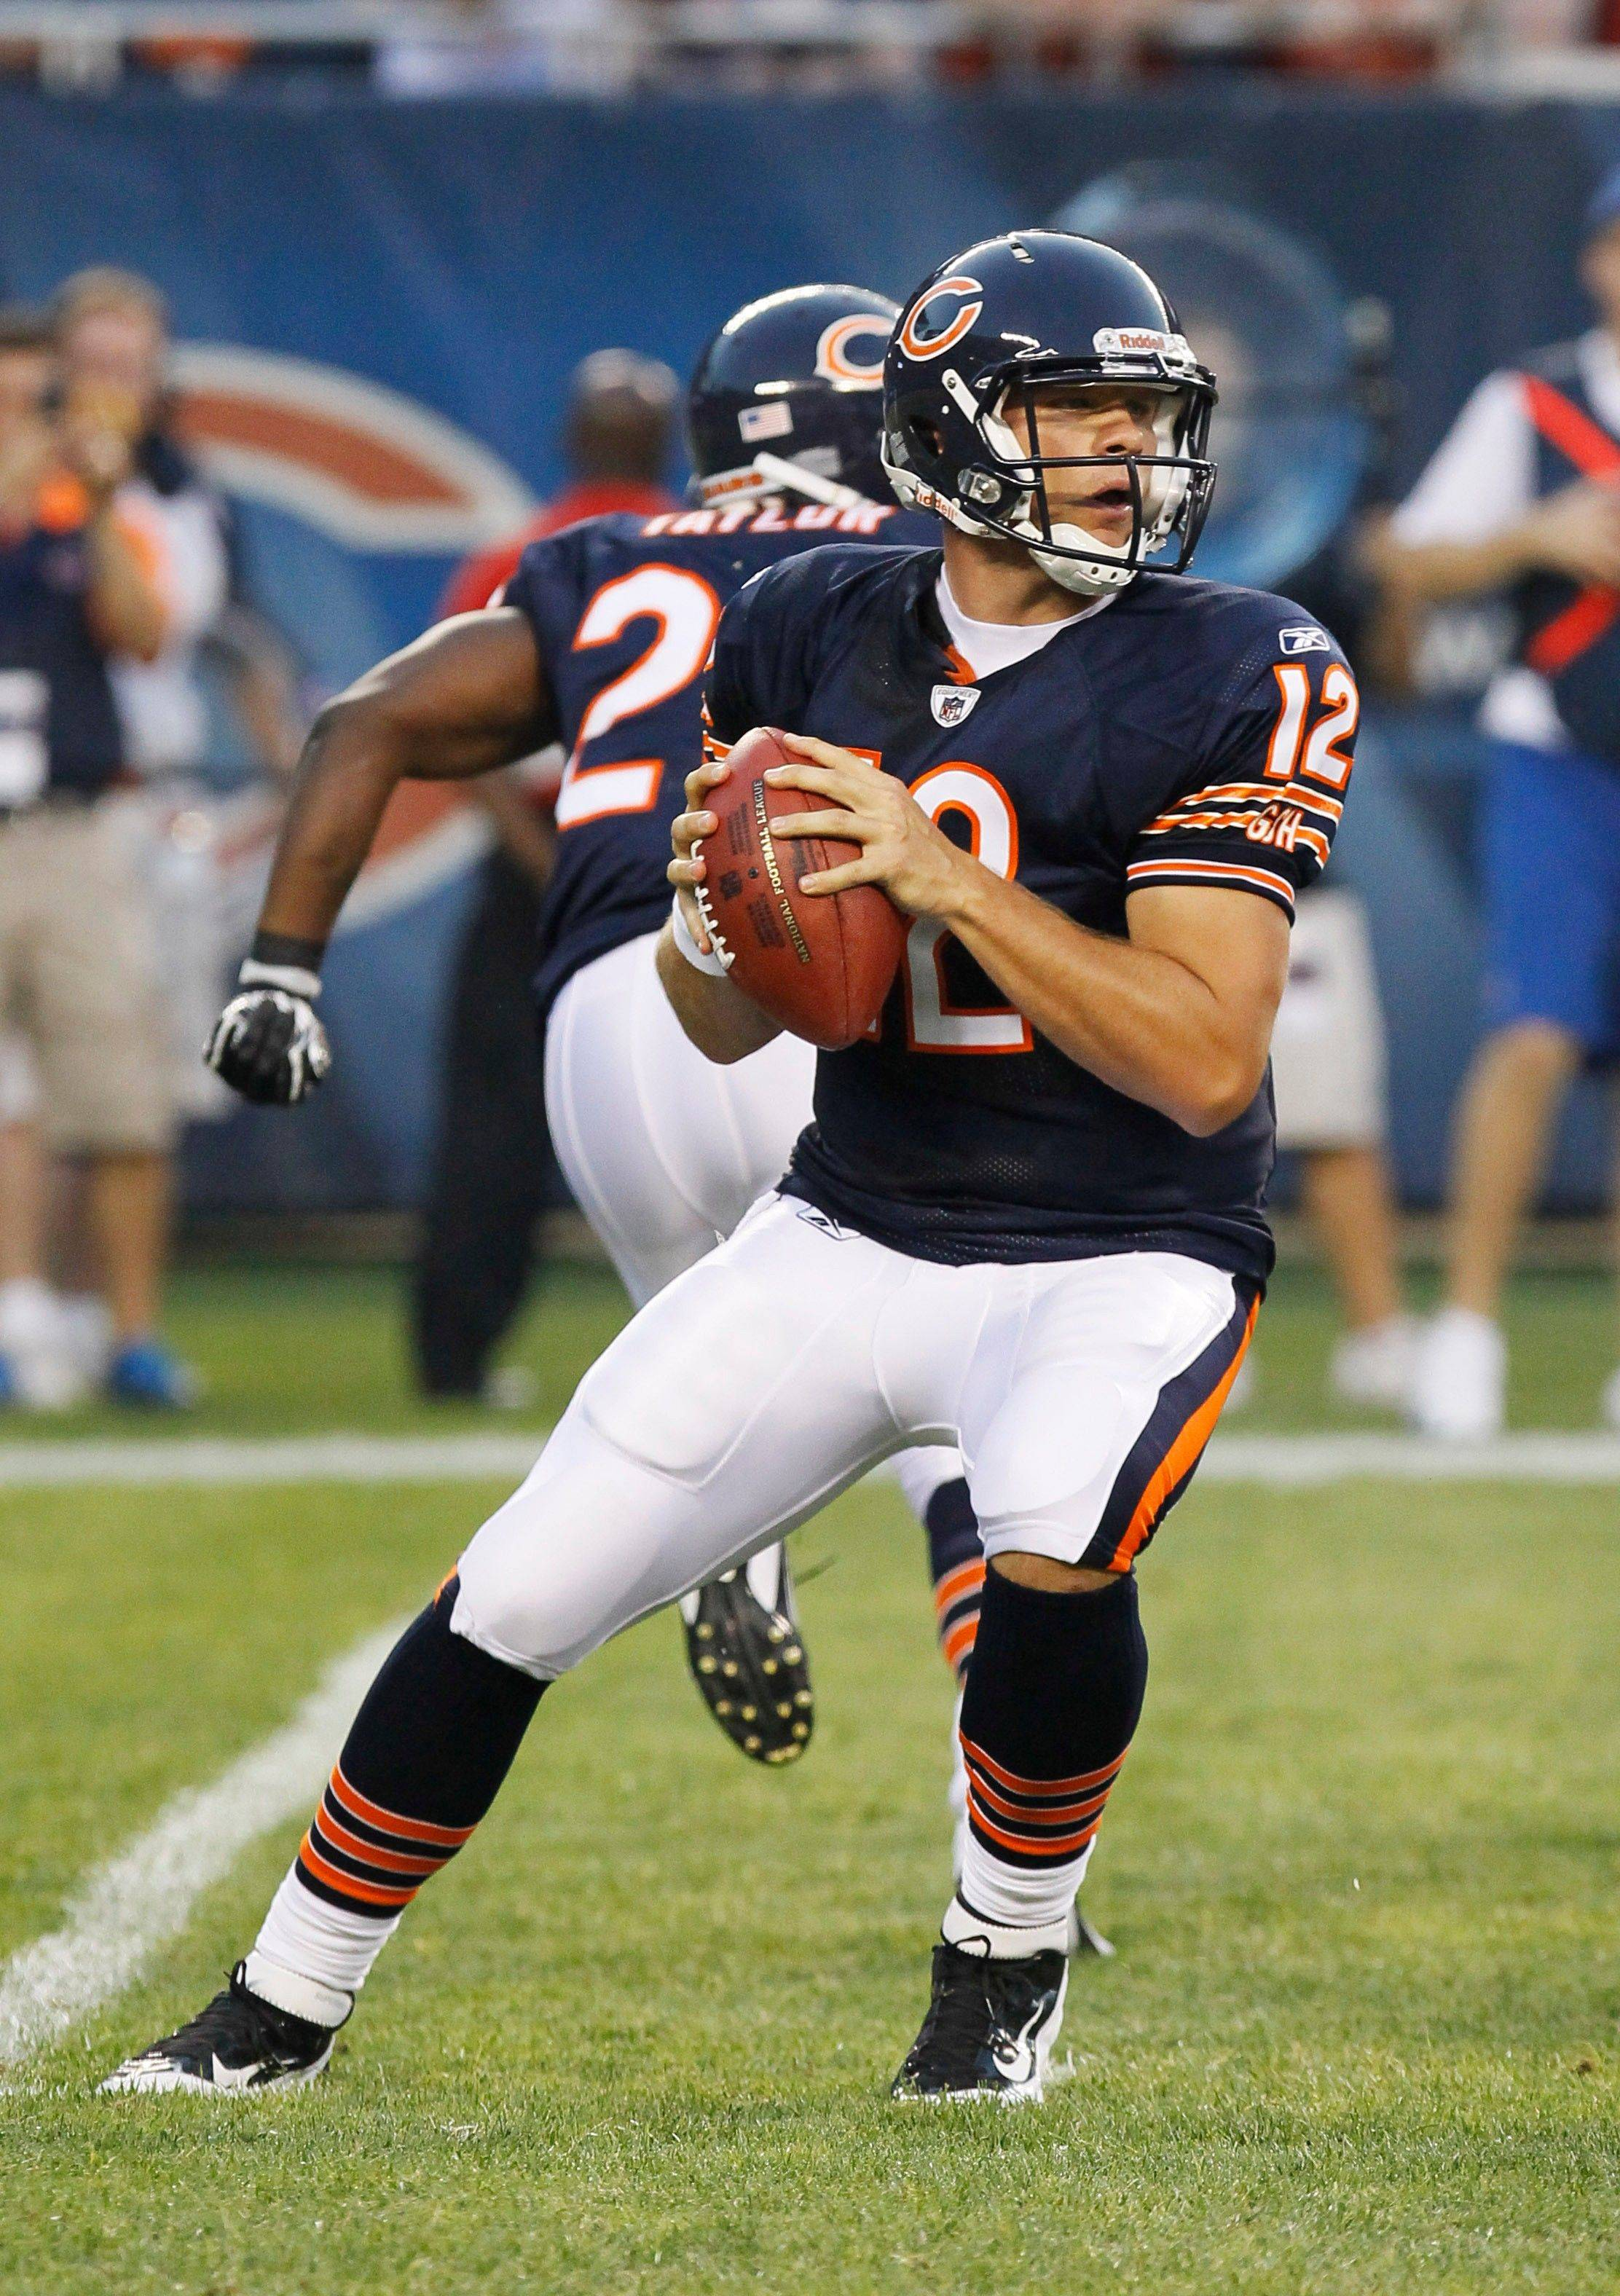 Chicago Bears quarterback Caleb Hanie looks for a receiver in the first half.